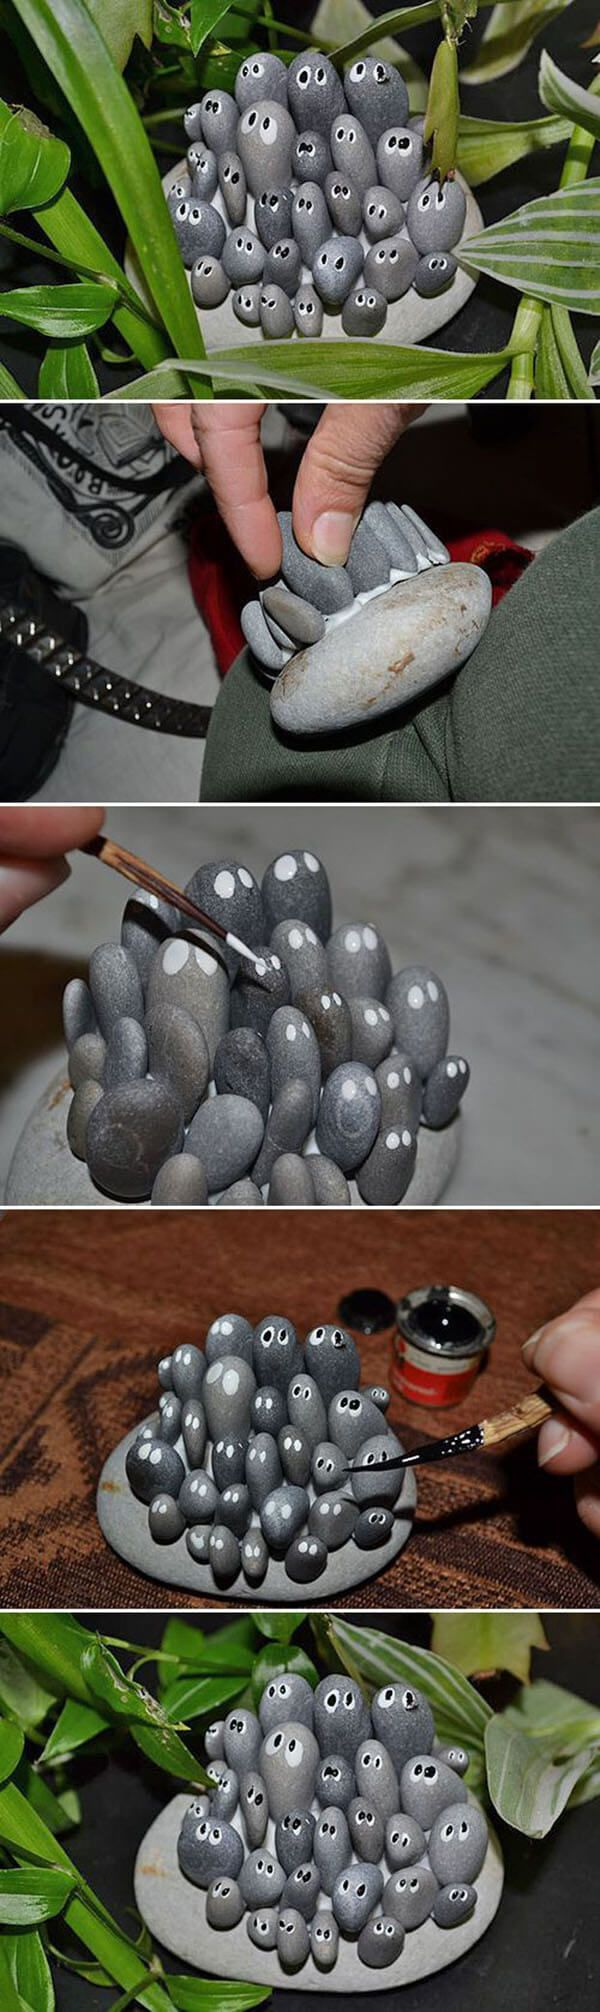 234 best river rocks images on pinterest painted rocks crafts and